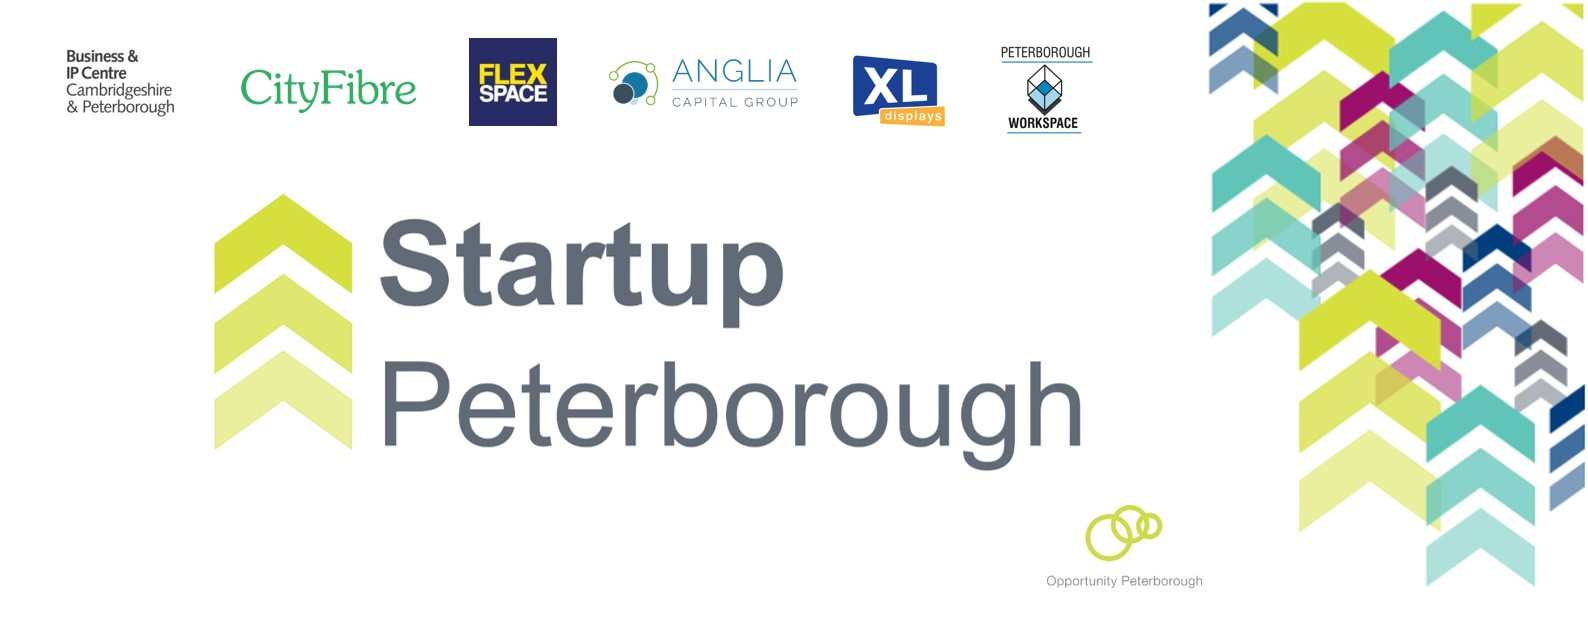 Meet the app developers, electric vehicle charge point installers, and creative card makers among the first cohort to complete Startup Peterborough bootcamp programme